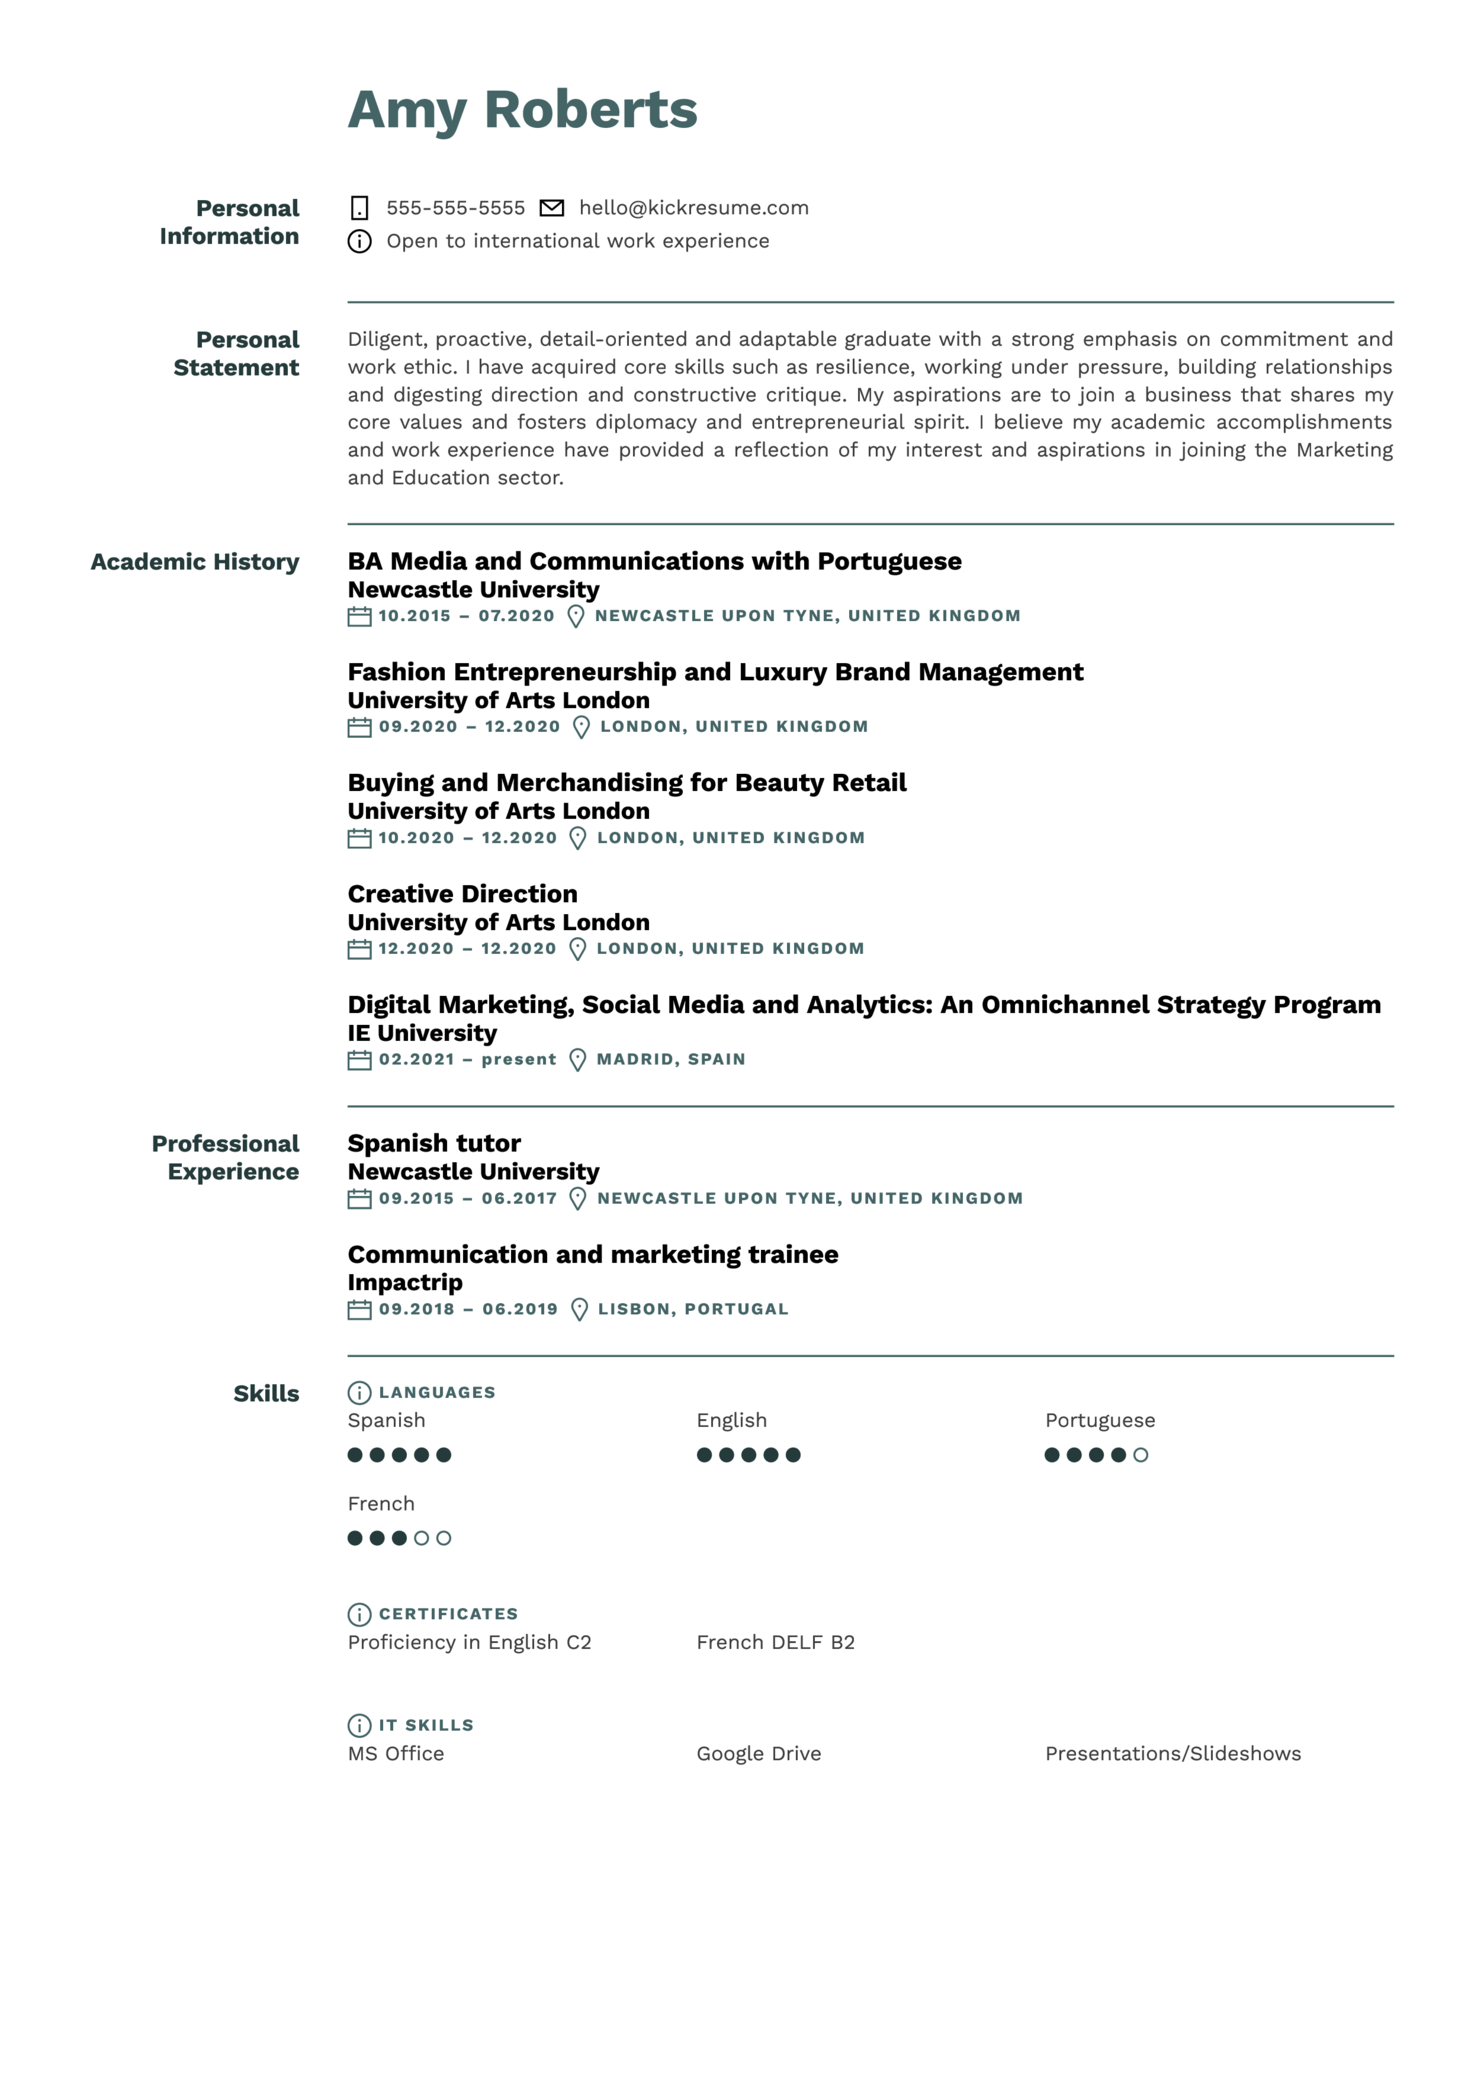 Analyst at ING Resume Sample (Part 1)